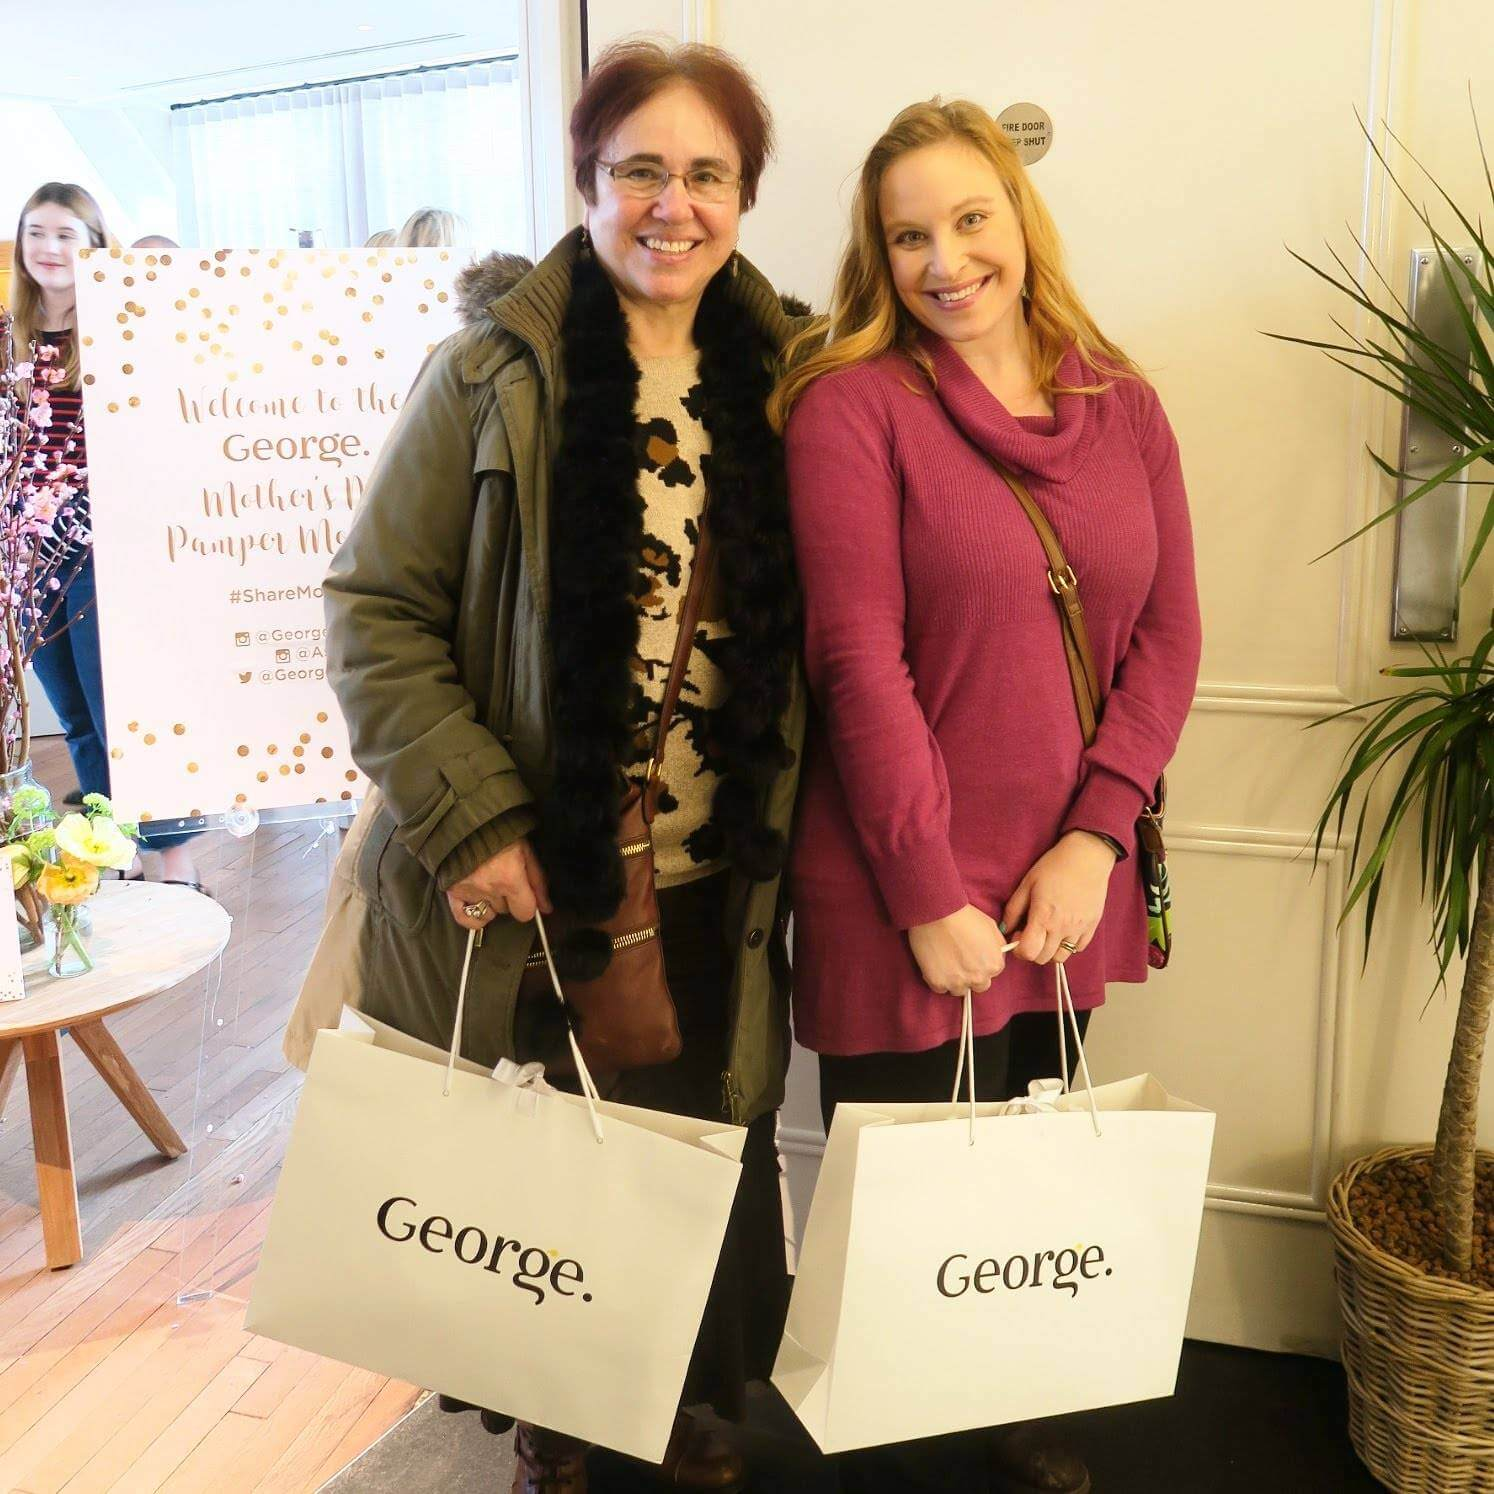 Our day at the #ShareMoreLove event: What's new in George at Asda this Season Spring Summer 2018